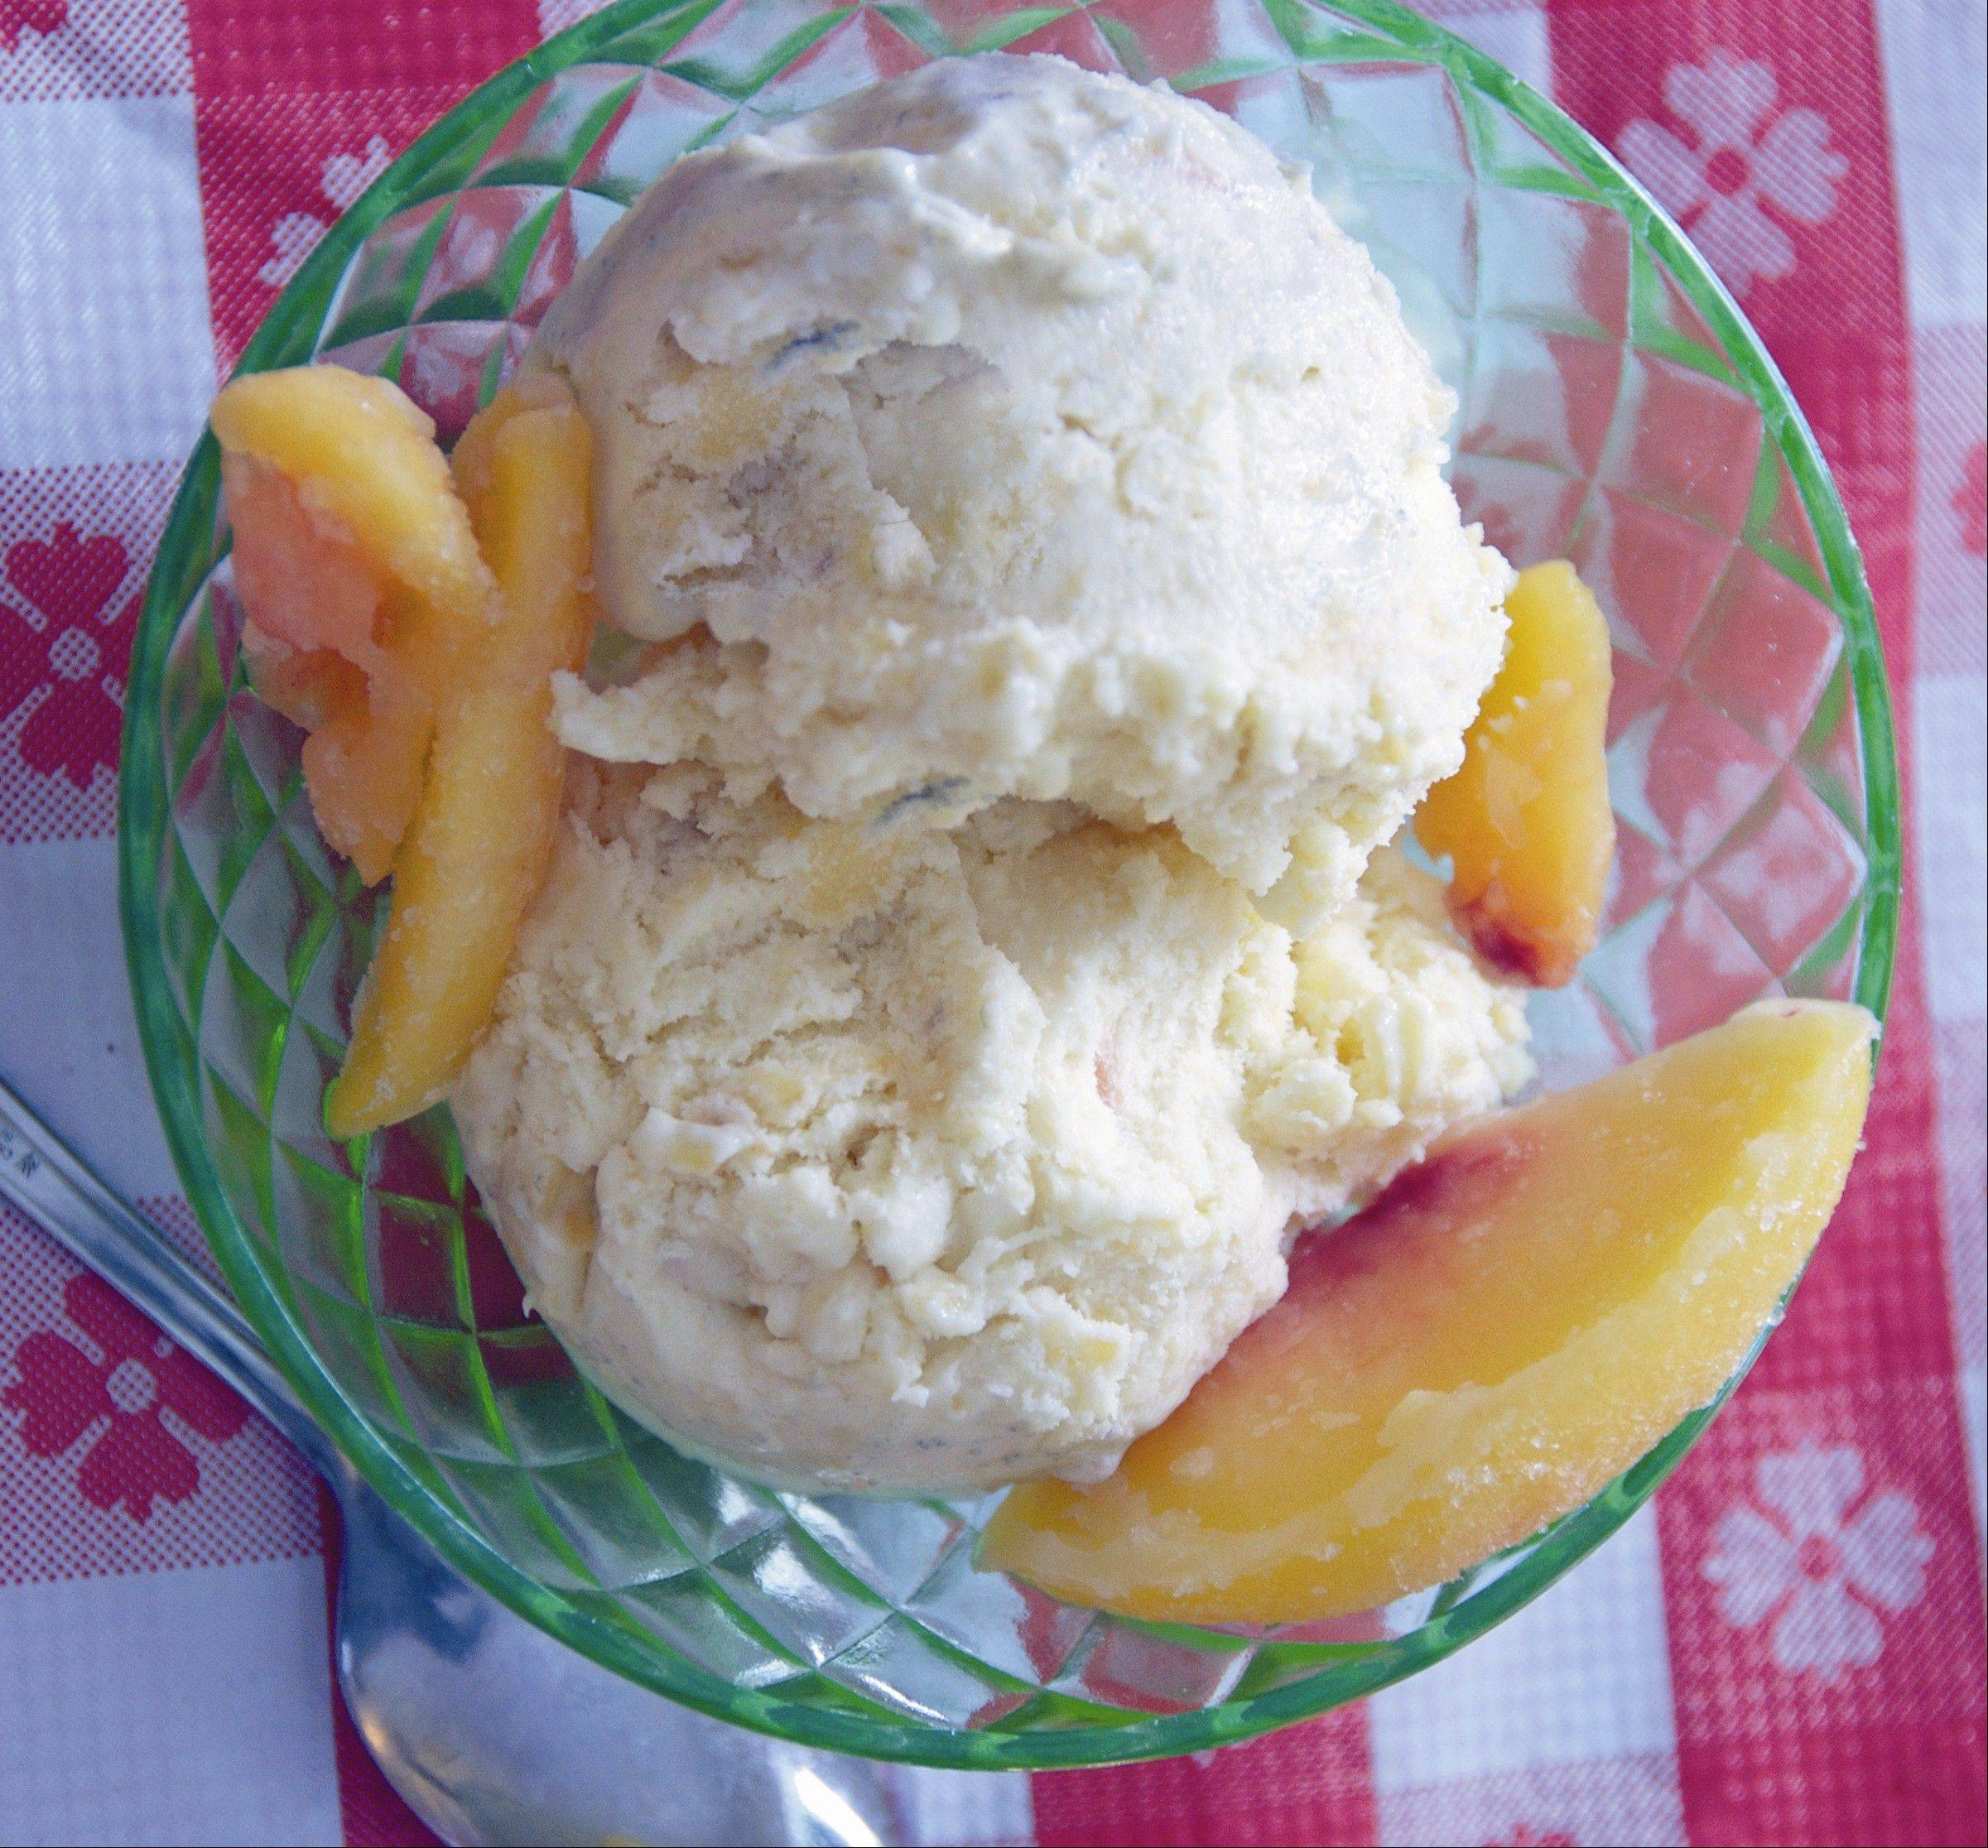 Fresh peaches taste even brighter in this custardy ice cream.